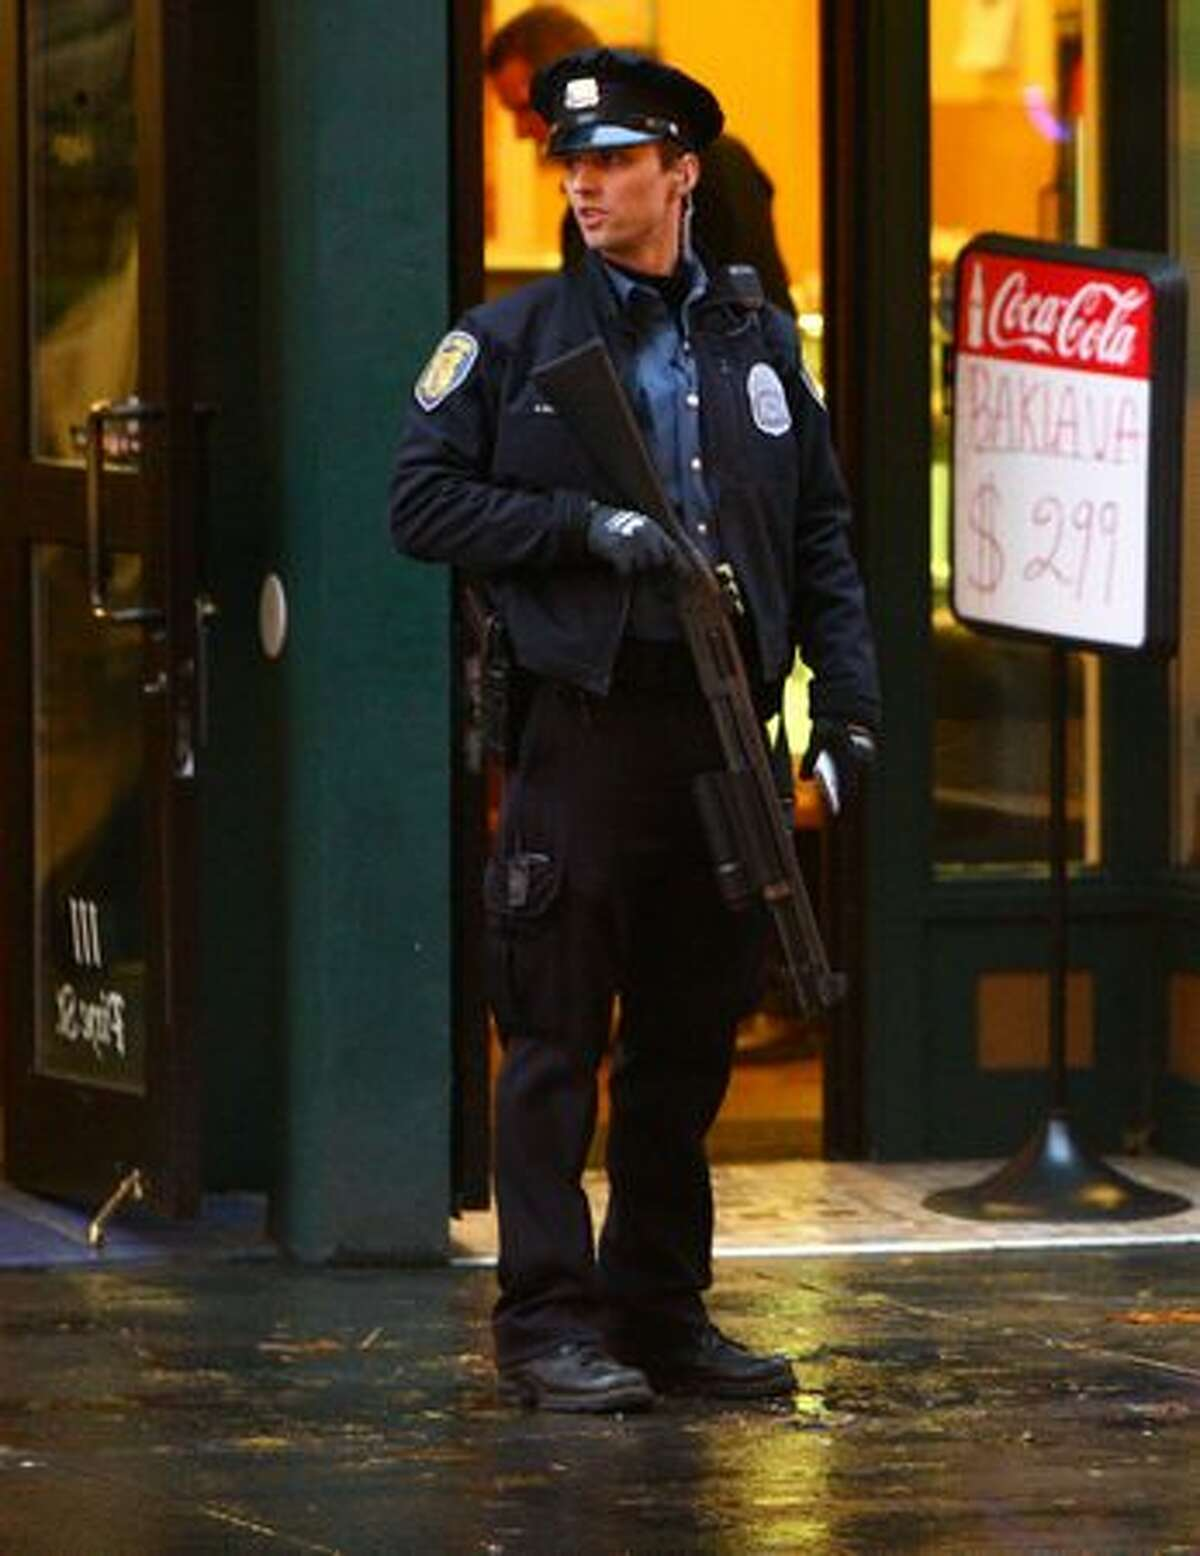 Seattle Police secure the scene after a man was shot in the head at the intersection of Second Avenue and Pike Street in downtown Seattle on Tuesday.